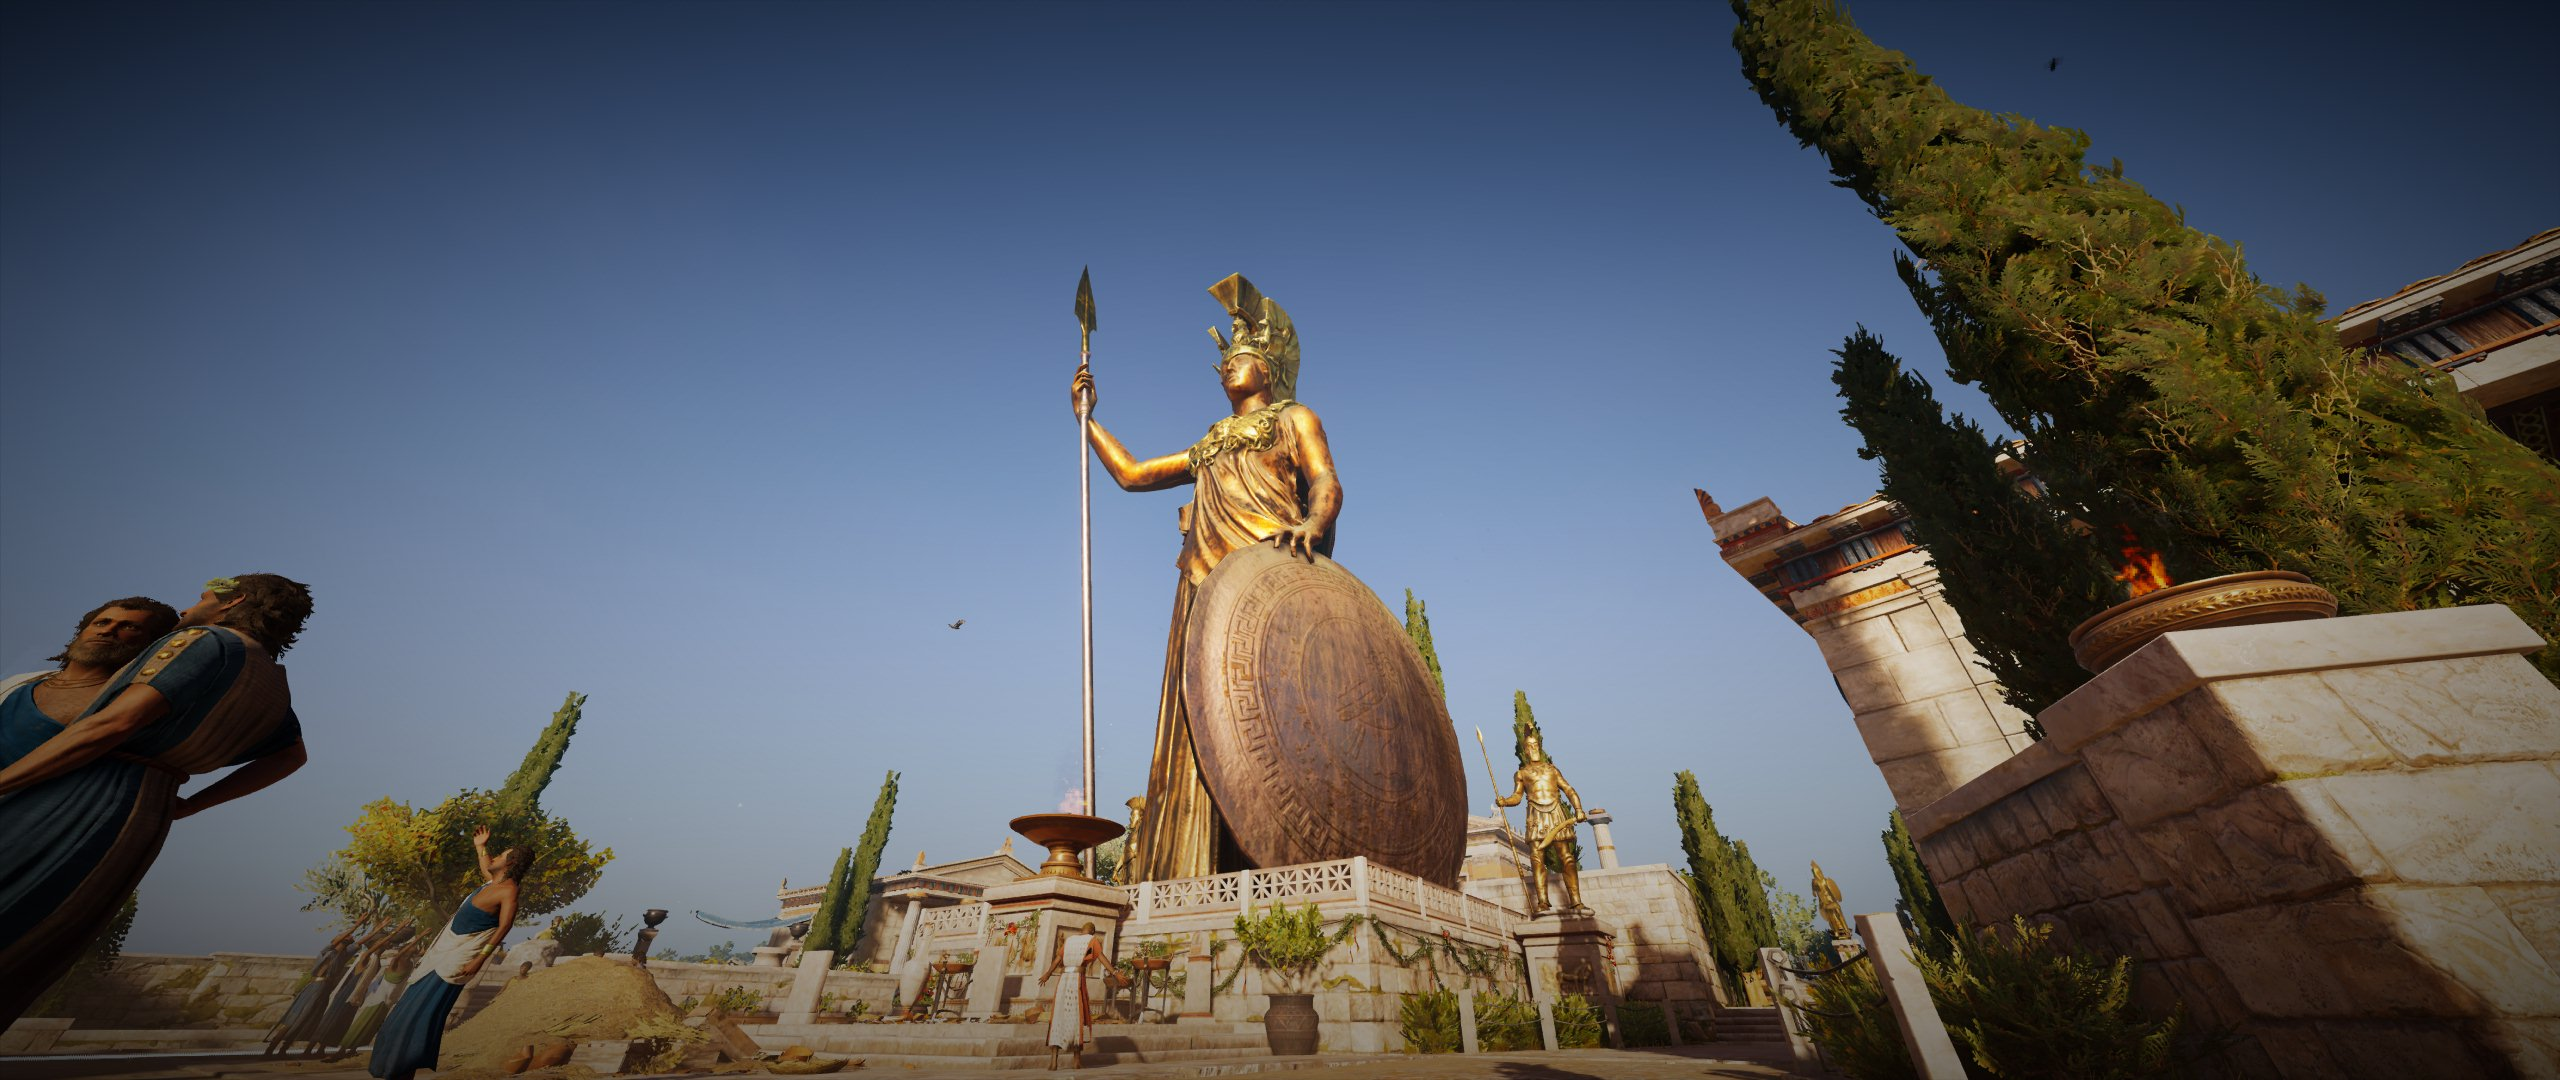 Athena bronze statue in Athens in Assassins Creed Odyssey